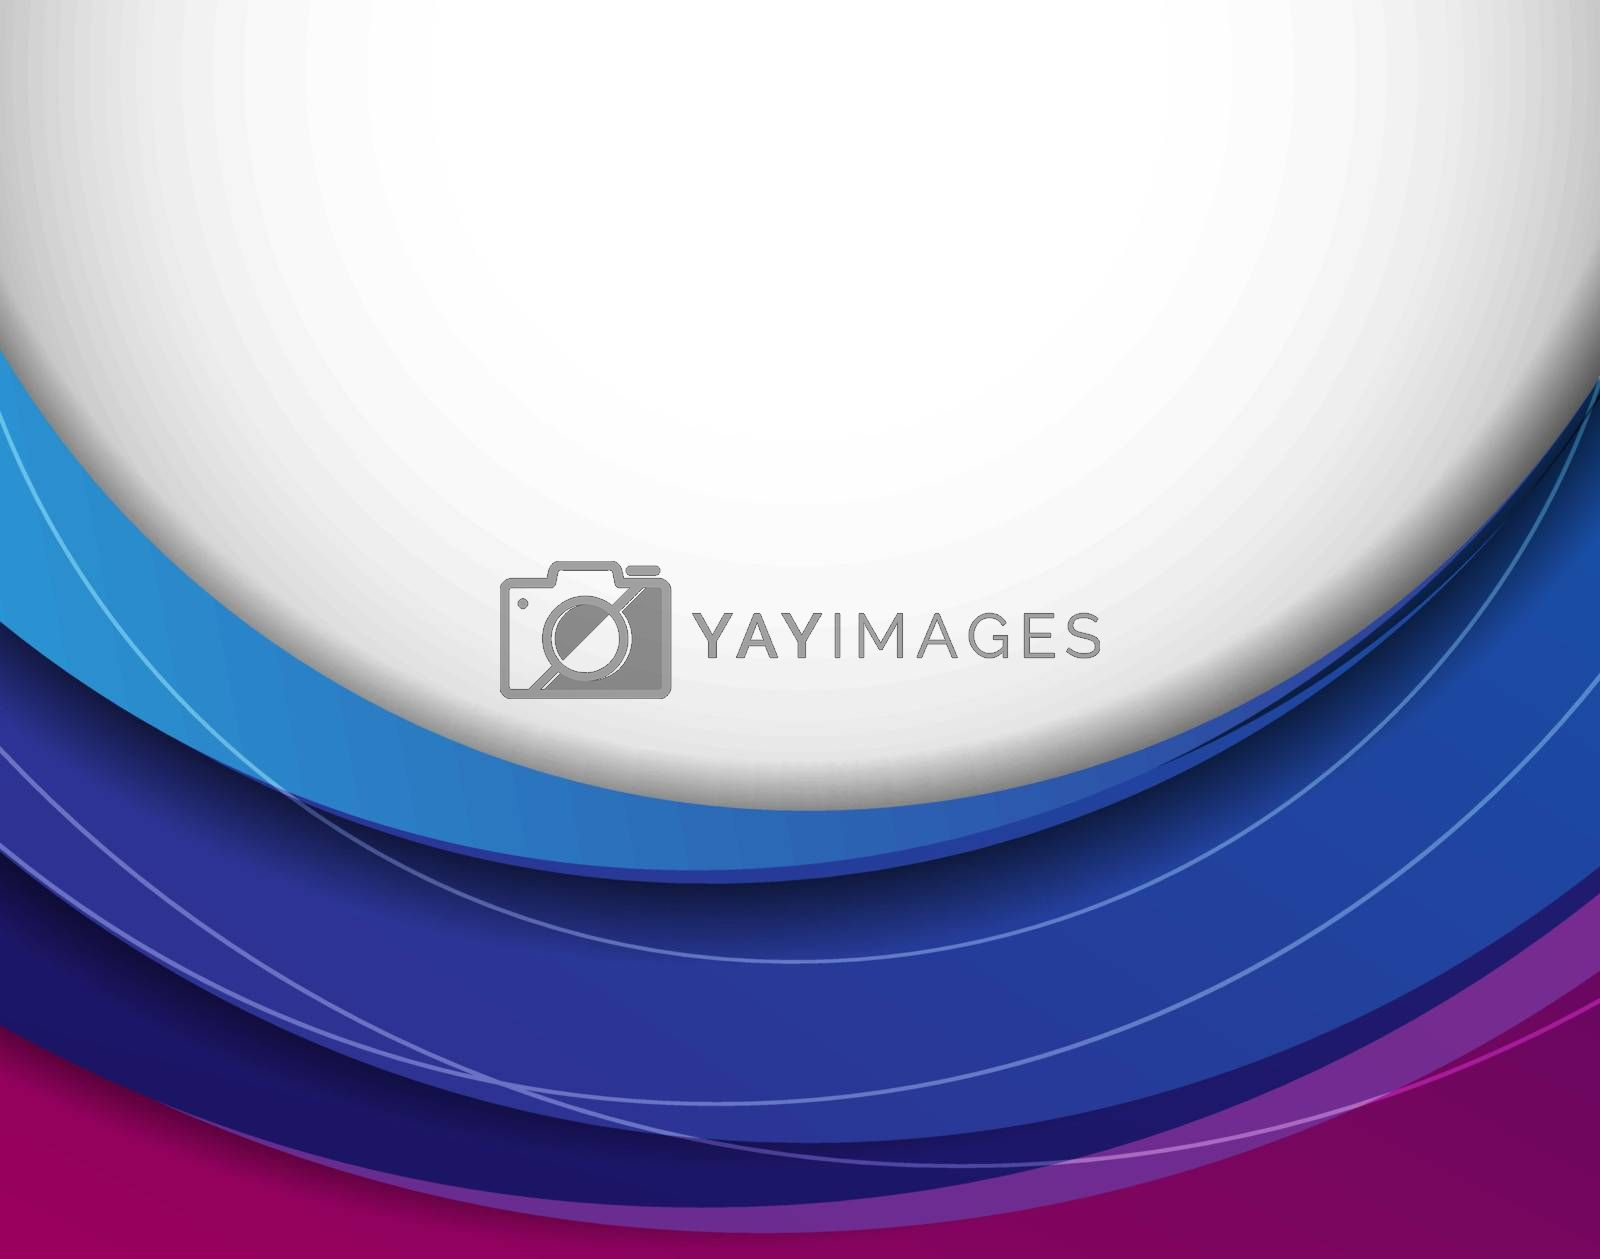 Royalty free image of Vector abstract background with colorful layers by marivlada